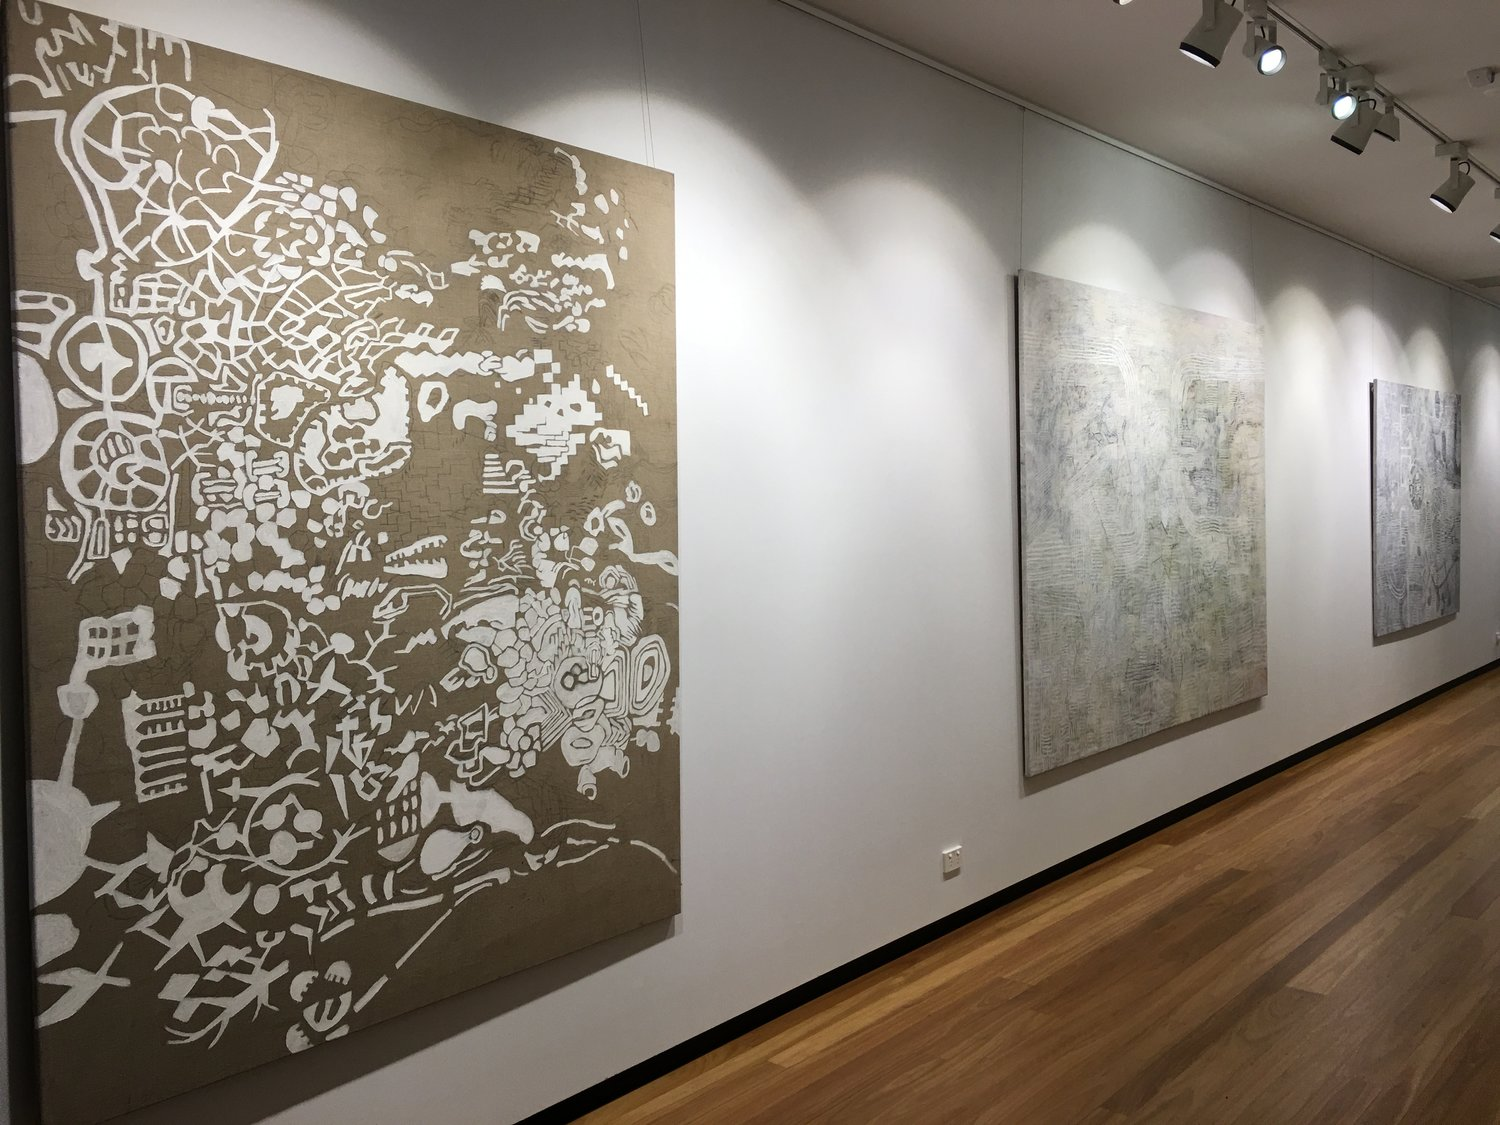 process  2017 (Installation view), Town Hall Gallery, Hawthorn 2017